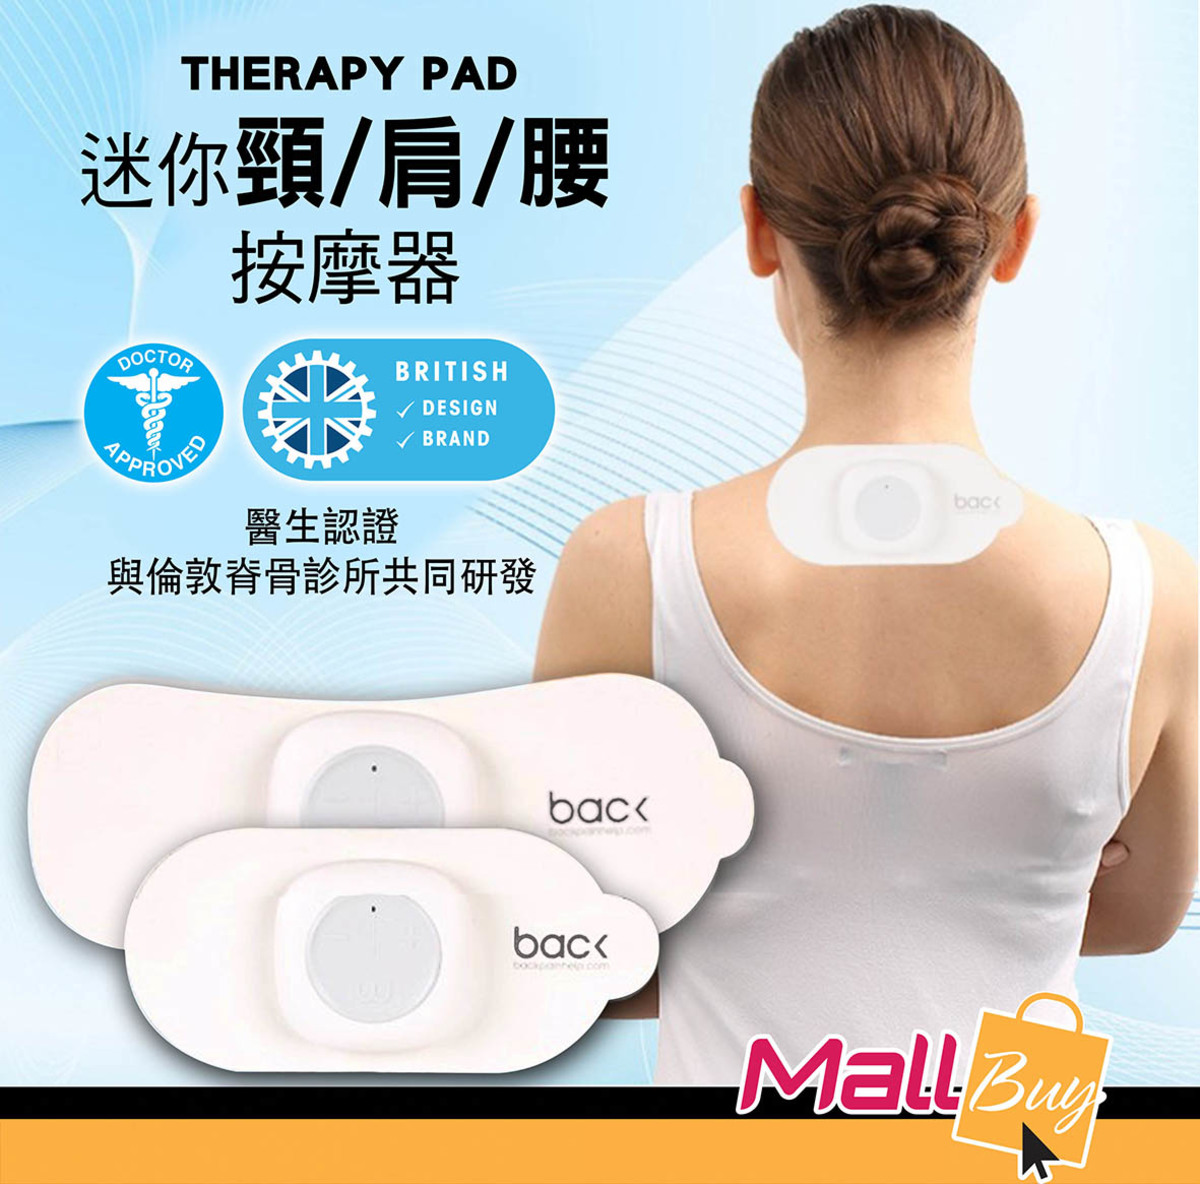 back - Therapy pad